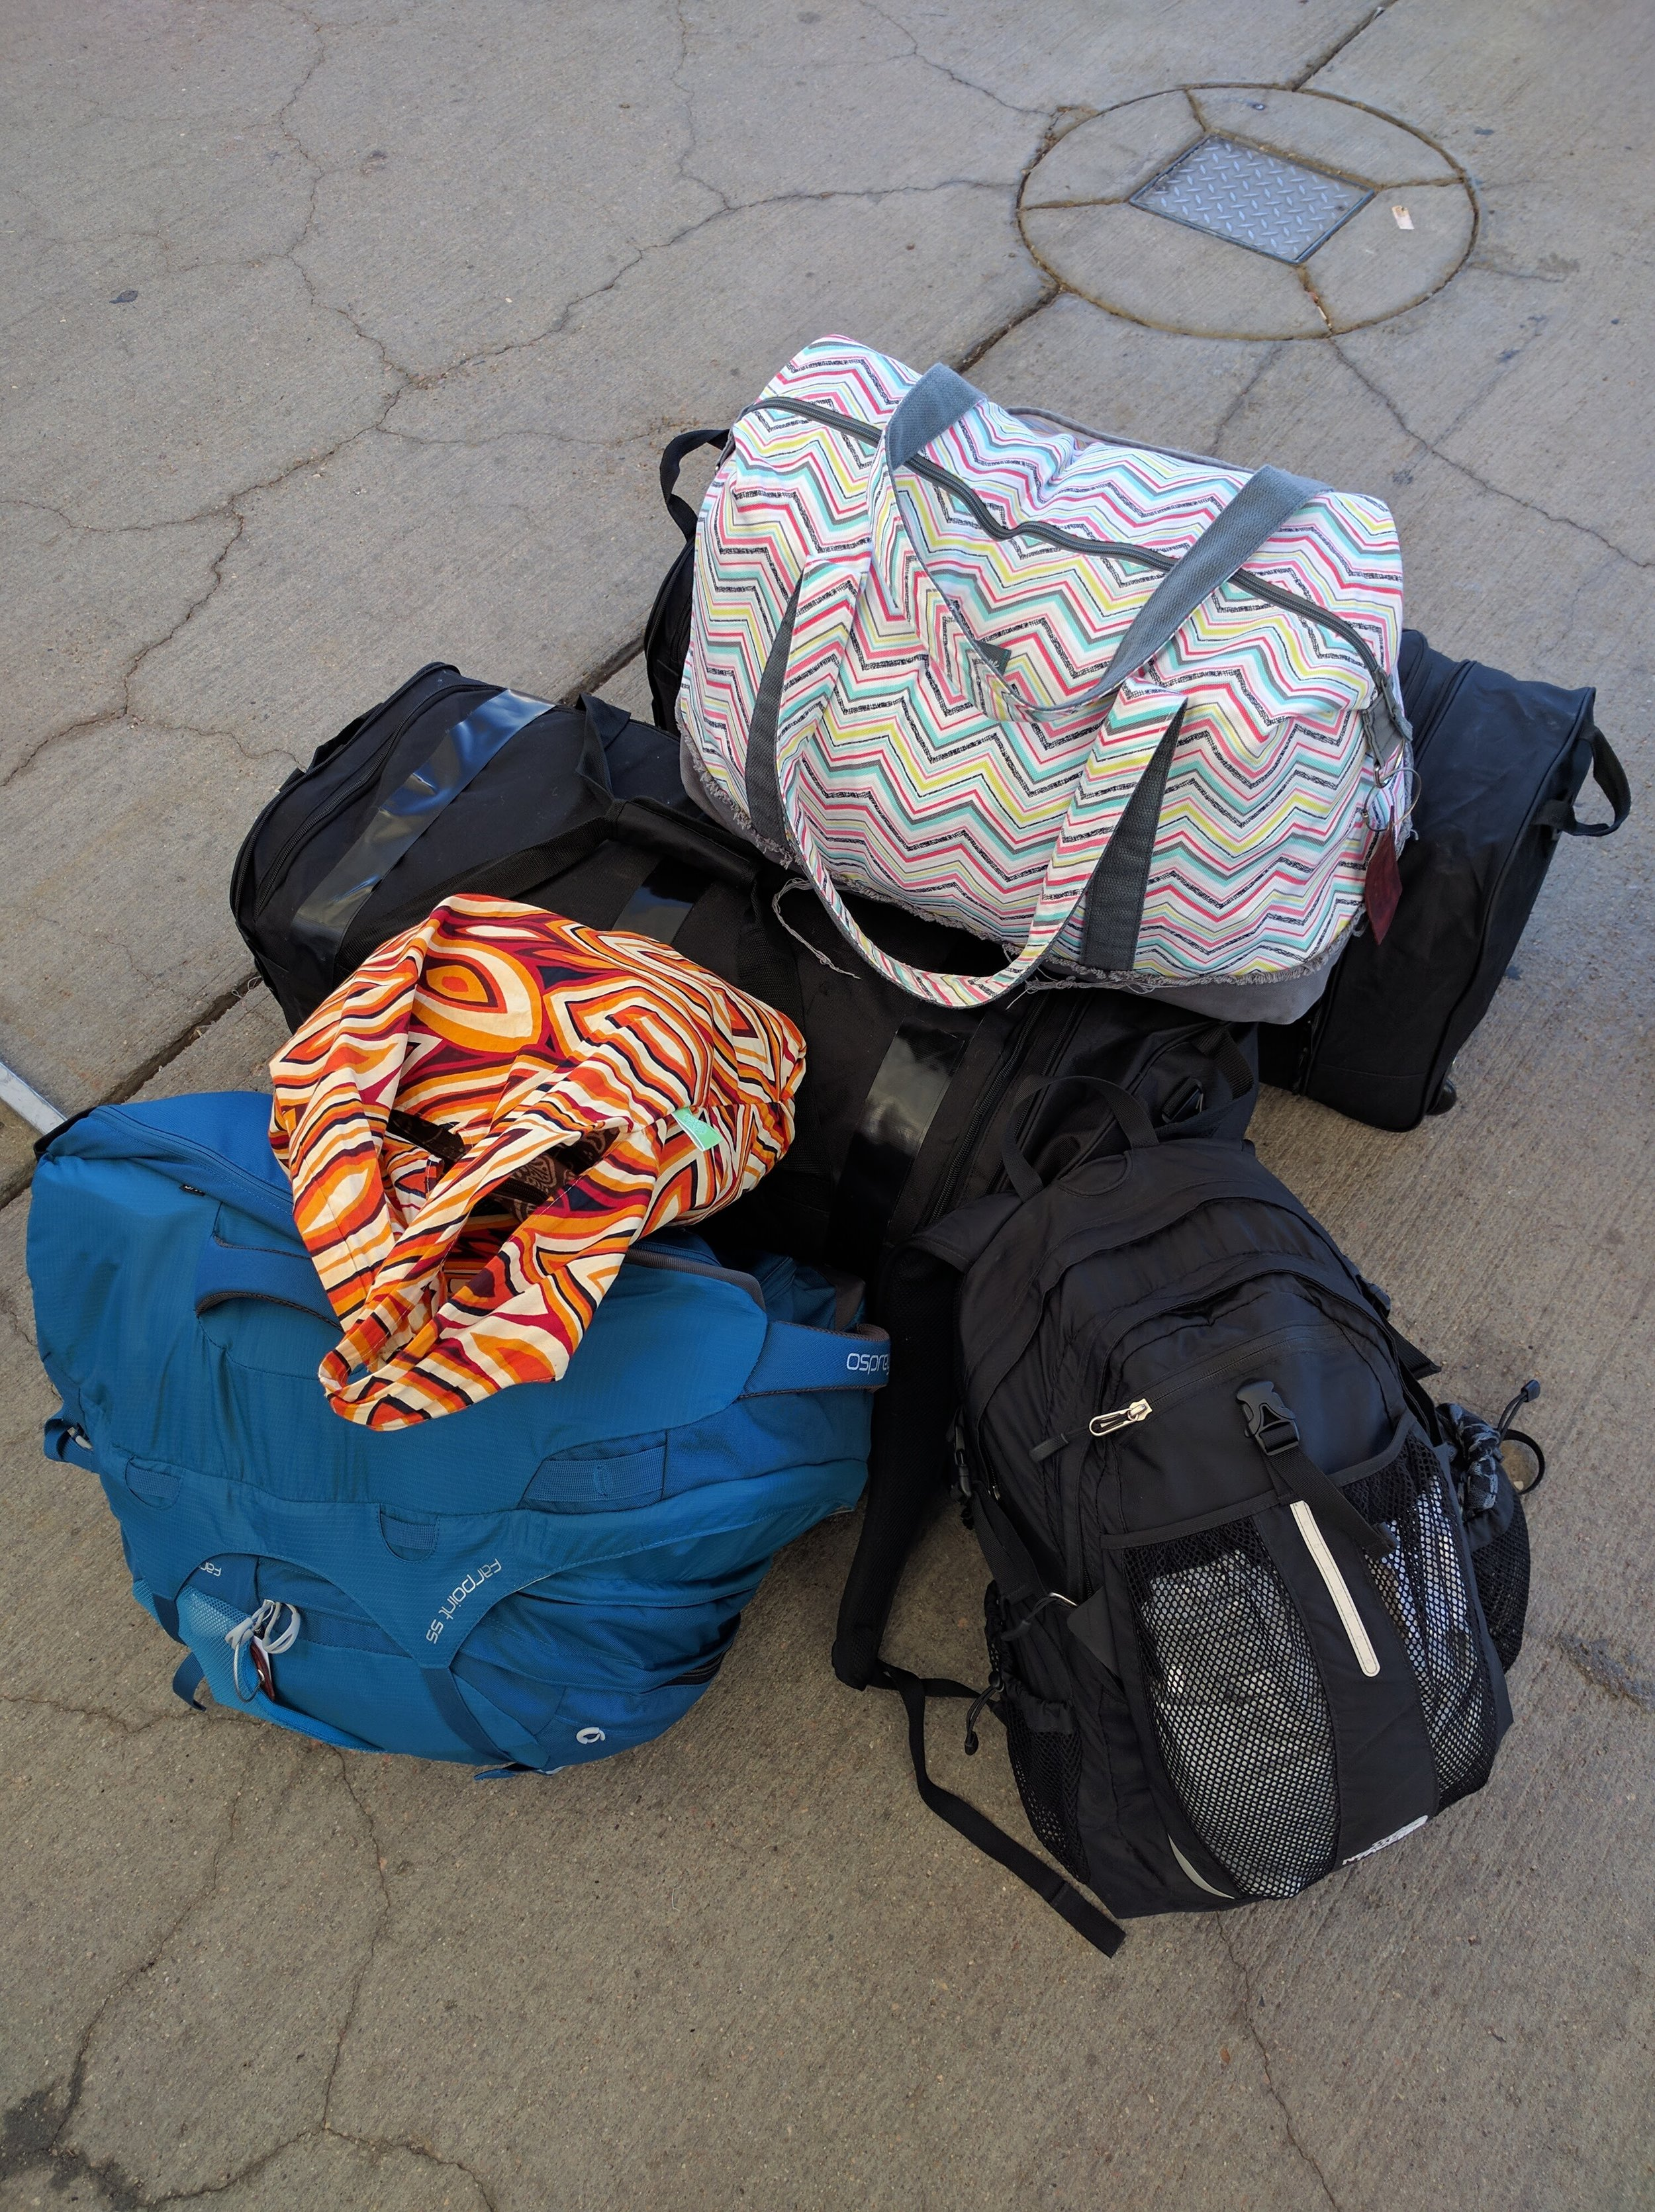 Bags are packed! More than half are filled with school supplies!